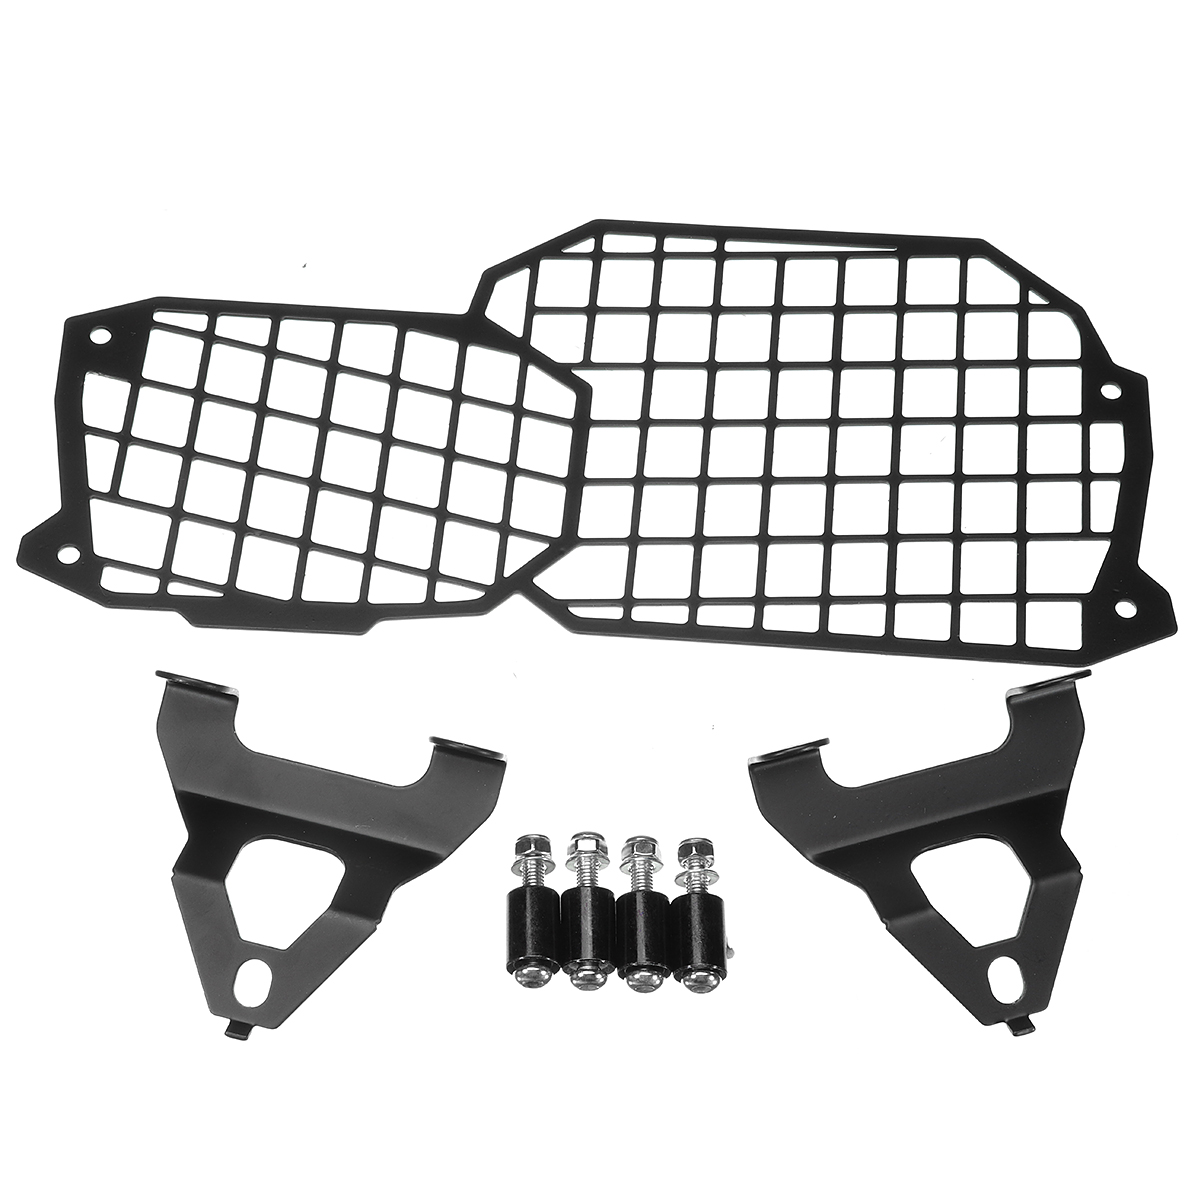 Motorcycle Headlight Bracket Lamp Grill Protector Guard For BMW F650GS F700GS F800GS